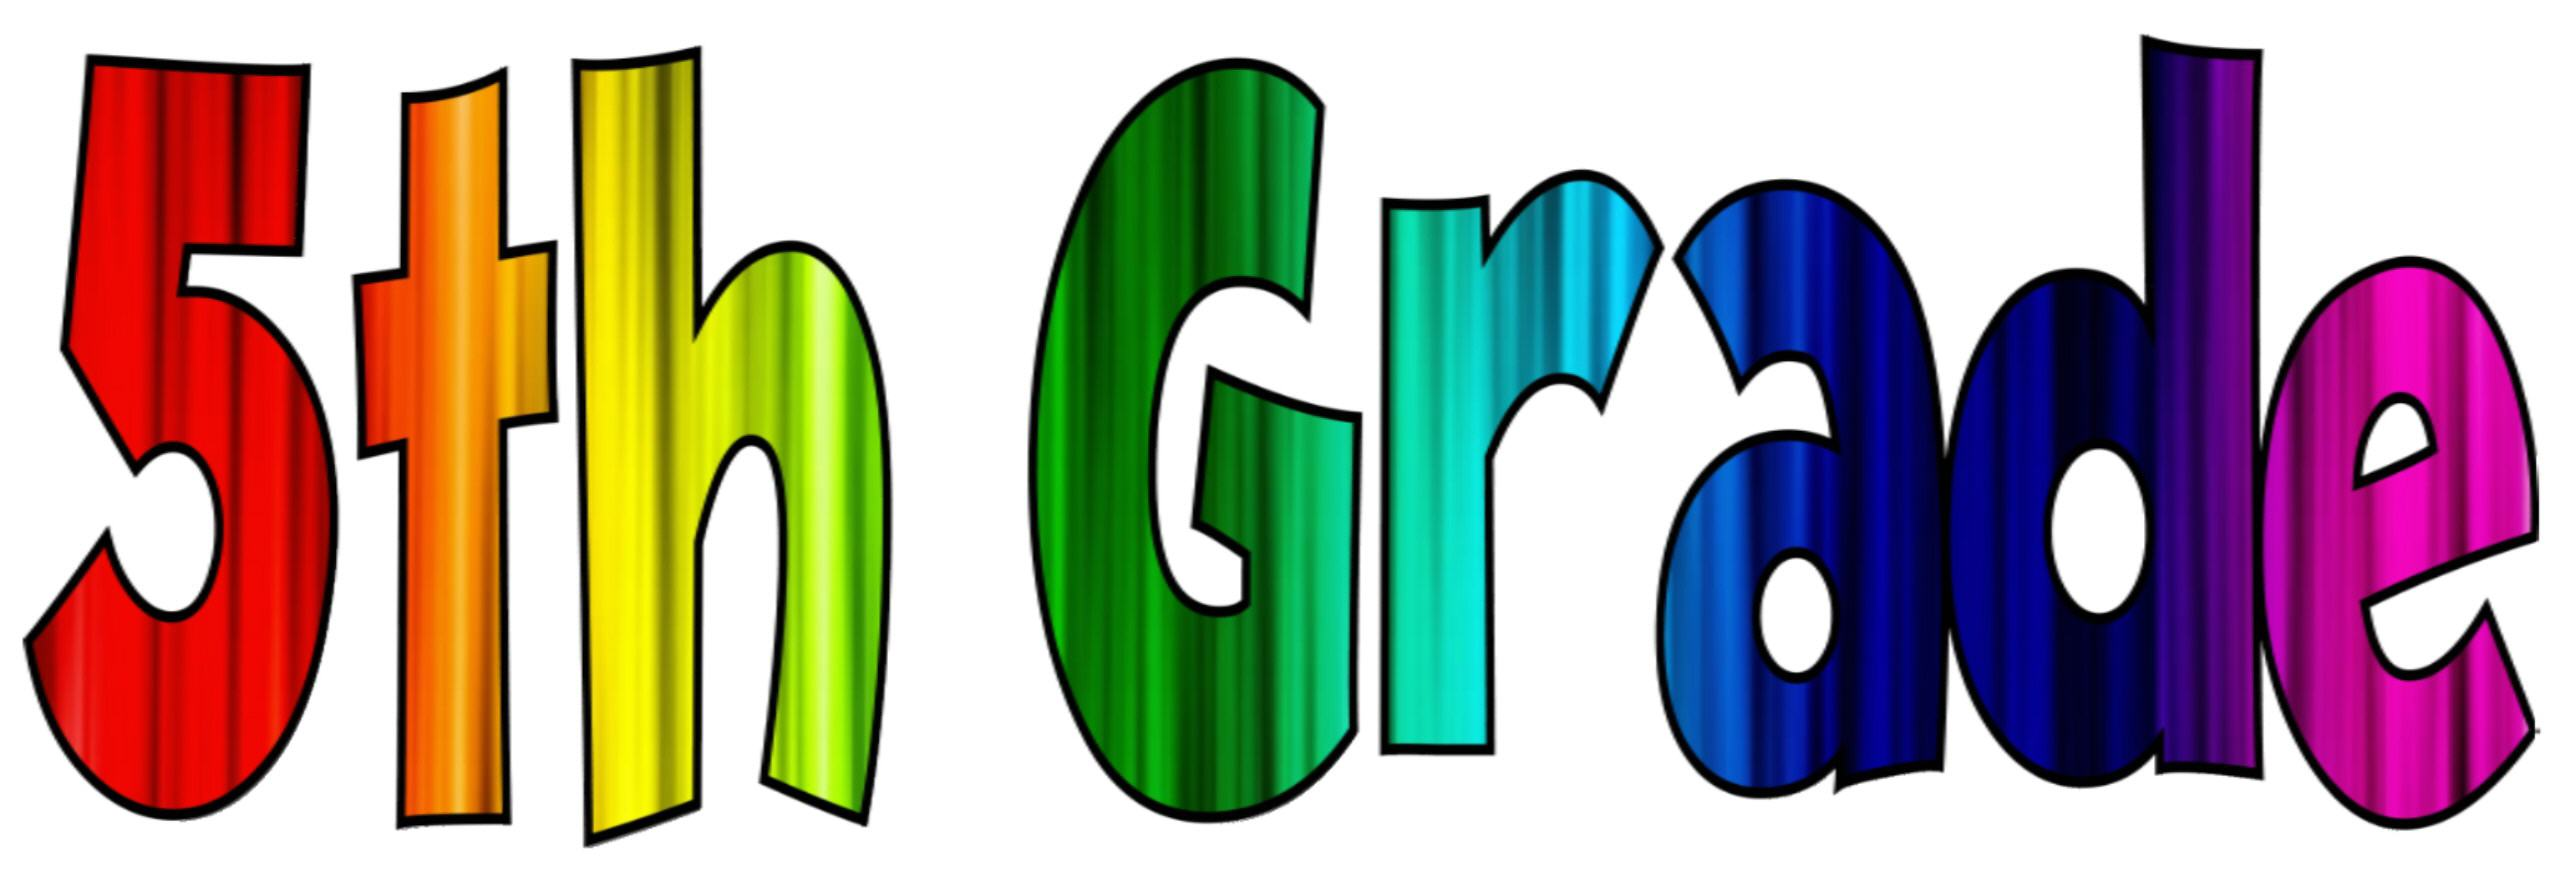 Free th cliparts download. Yearbook clipart 5th grade